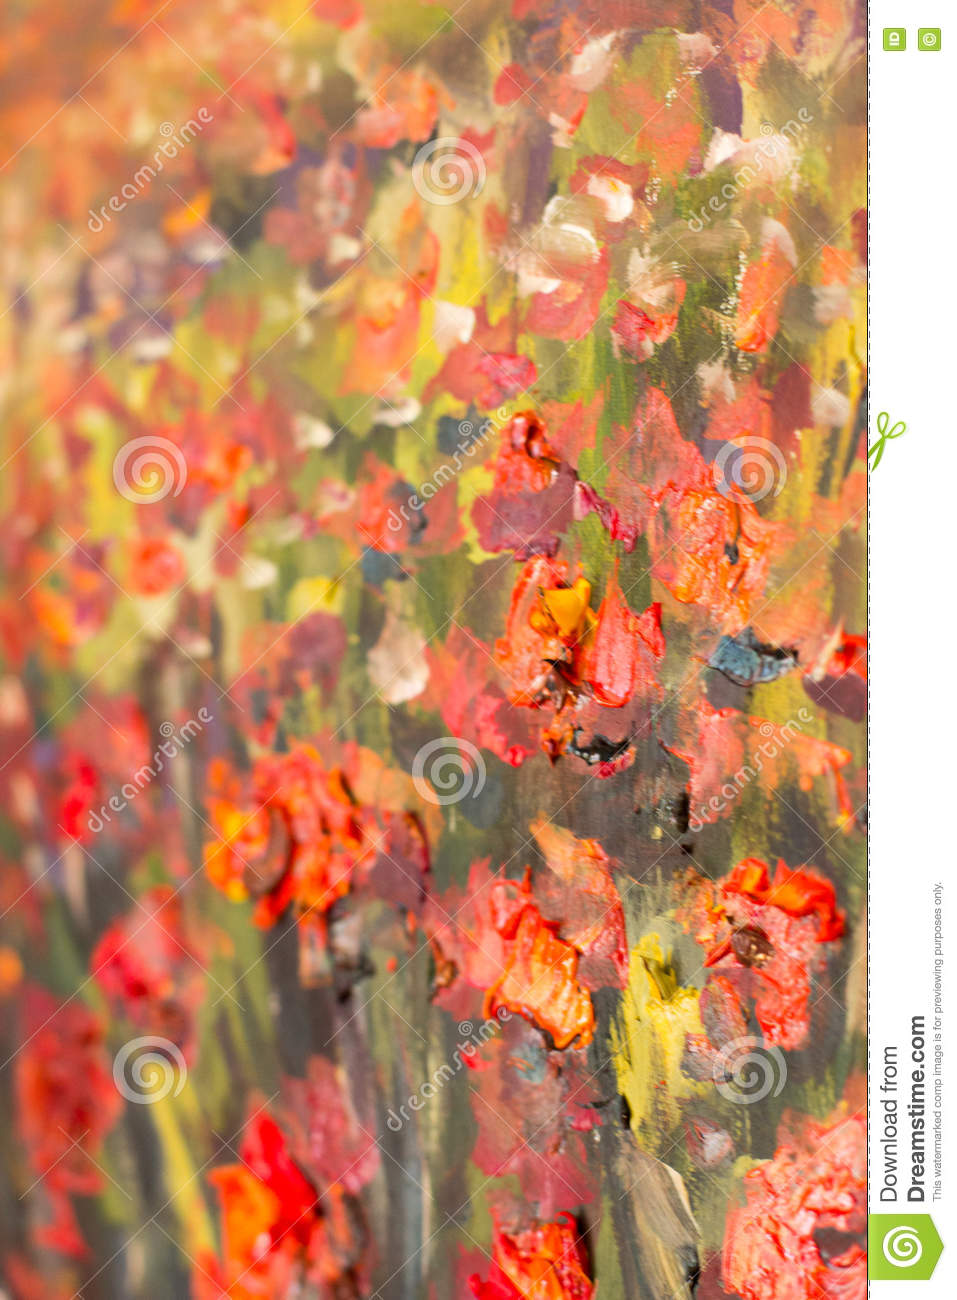 Red poppies flowers painting macro close up fragment stock red poppies flowers painting macro close up fragment mightylinksfo